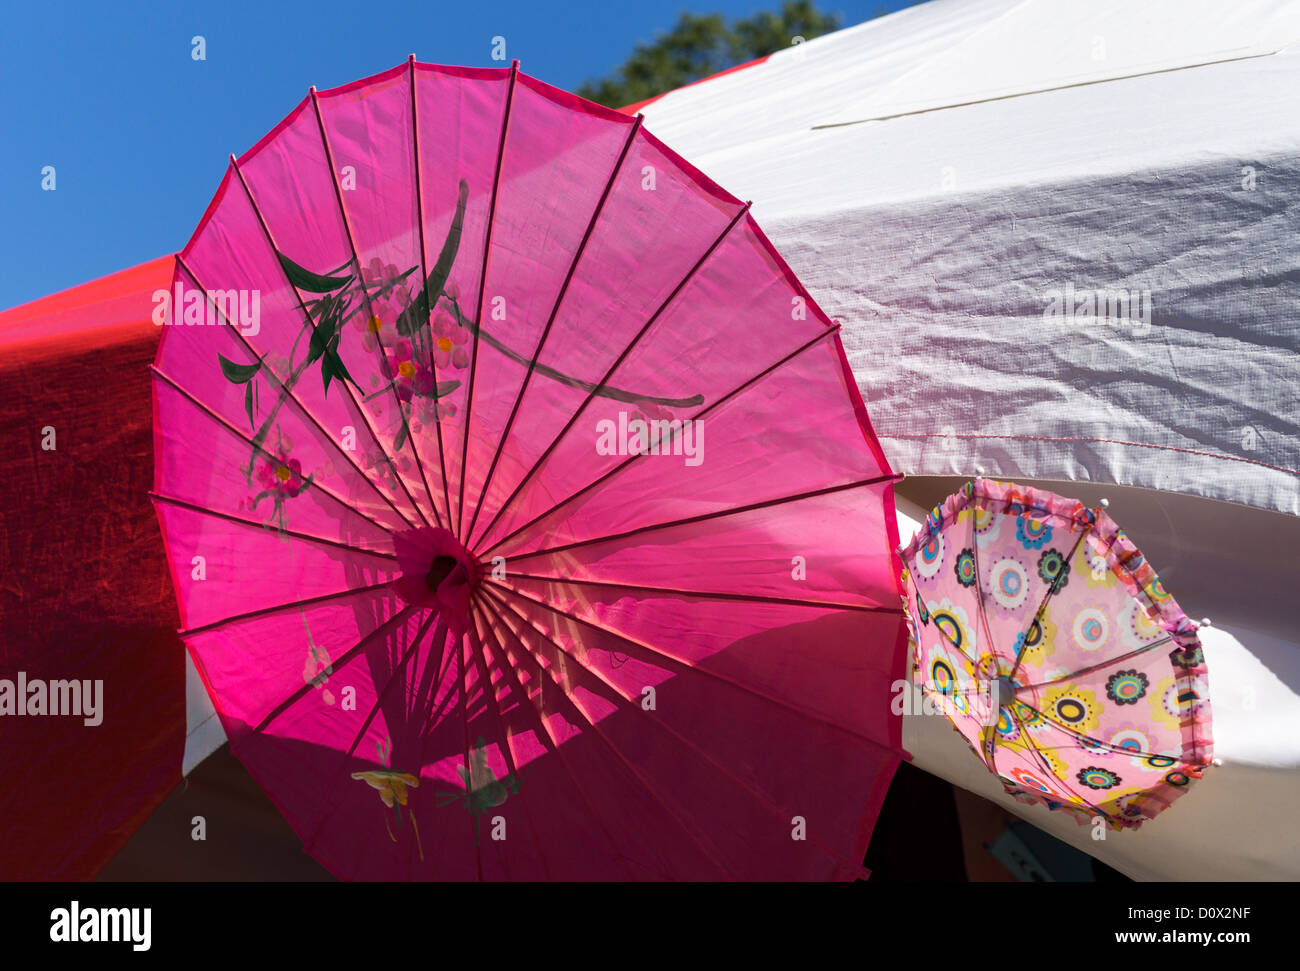 Parasol Decorations. Two brightly coloured parasols decorate a tent at Edmonton's Heritage Festival. - Stock Image